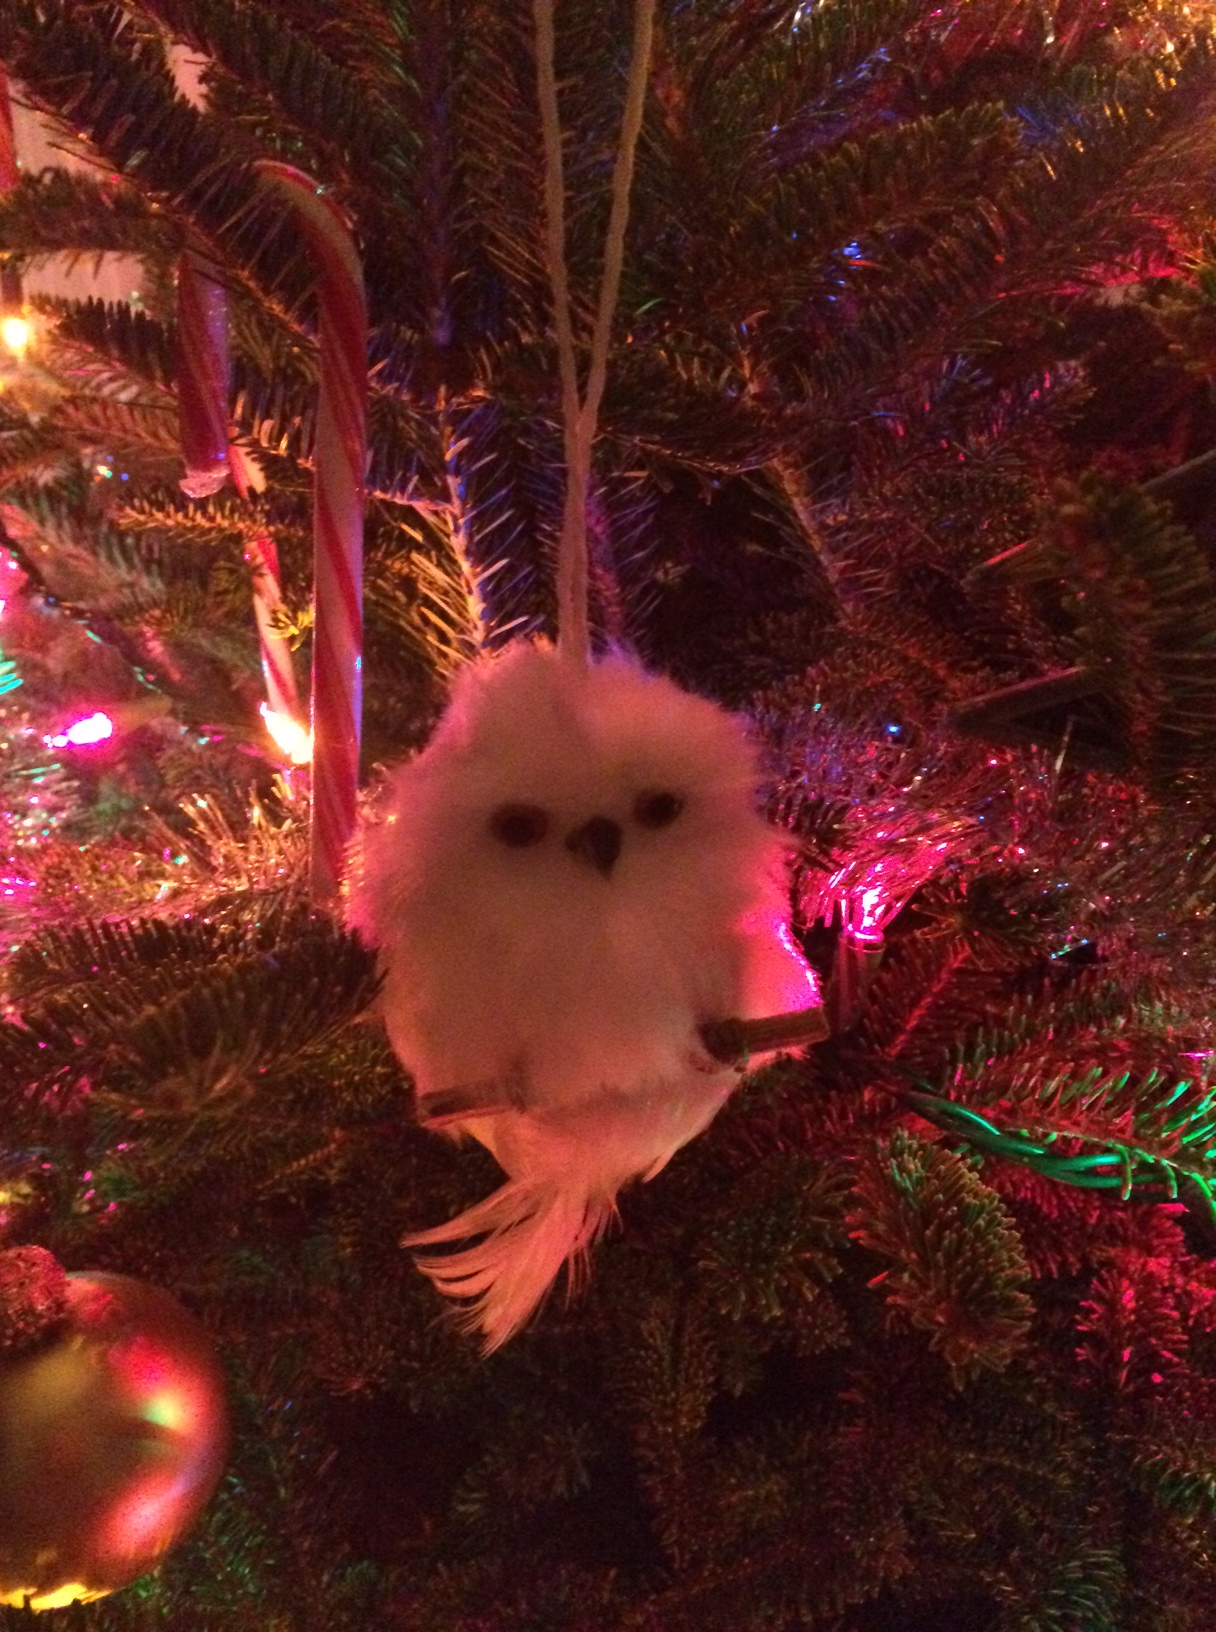 """In the spirit of the holiday, here's a picture of Hoover, my favorite Christmas ornament from our tree. (I purposely left out the """"whole tree"""" pic. I like to keep it tasteful around here. ;))"""